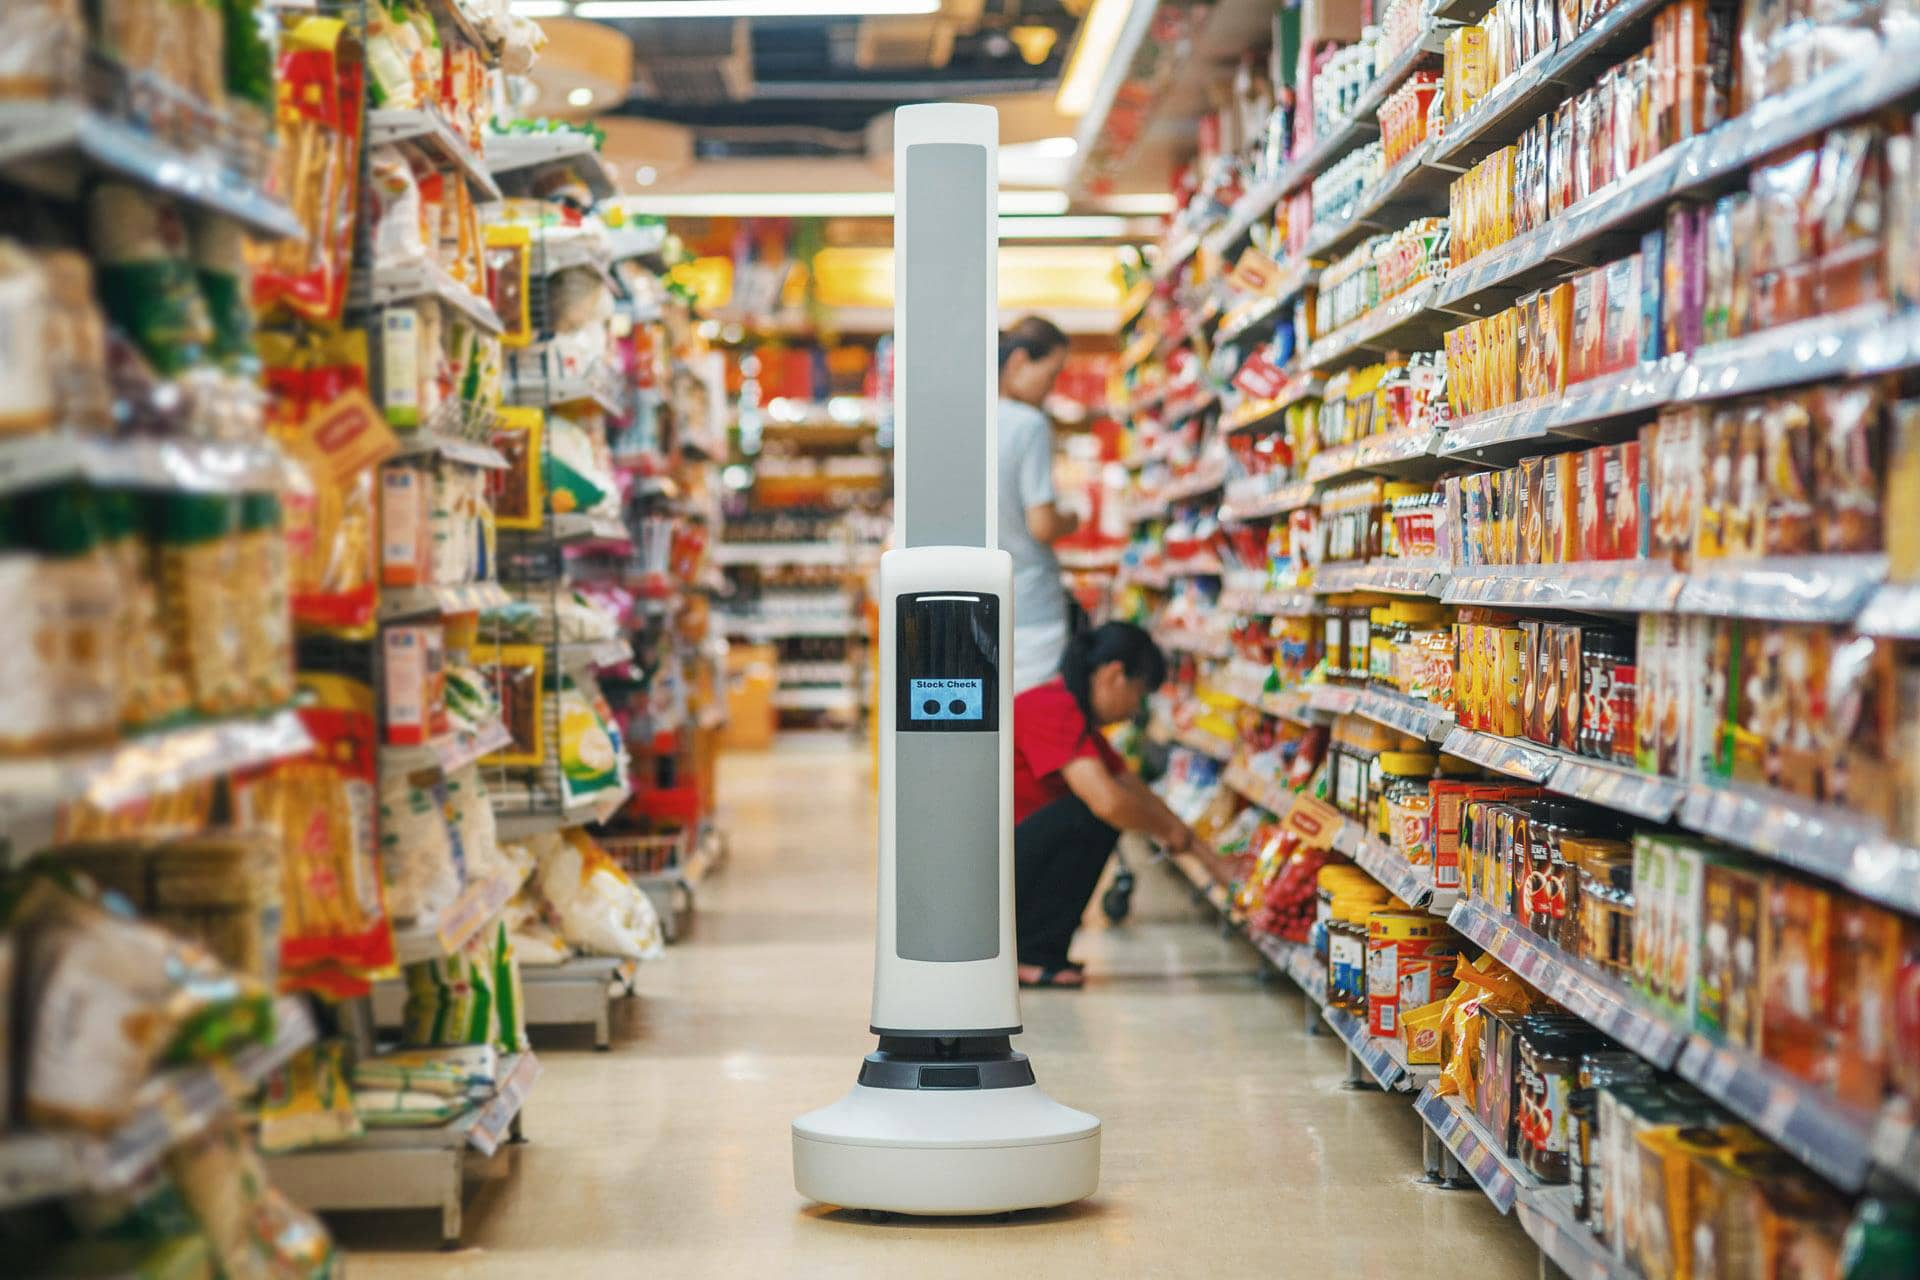 Robots Move Beyond Warehouses Into Retail Stores